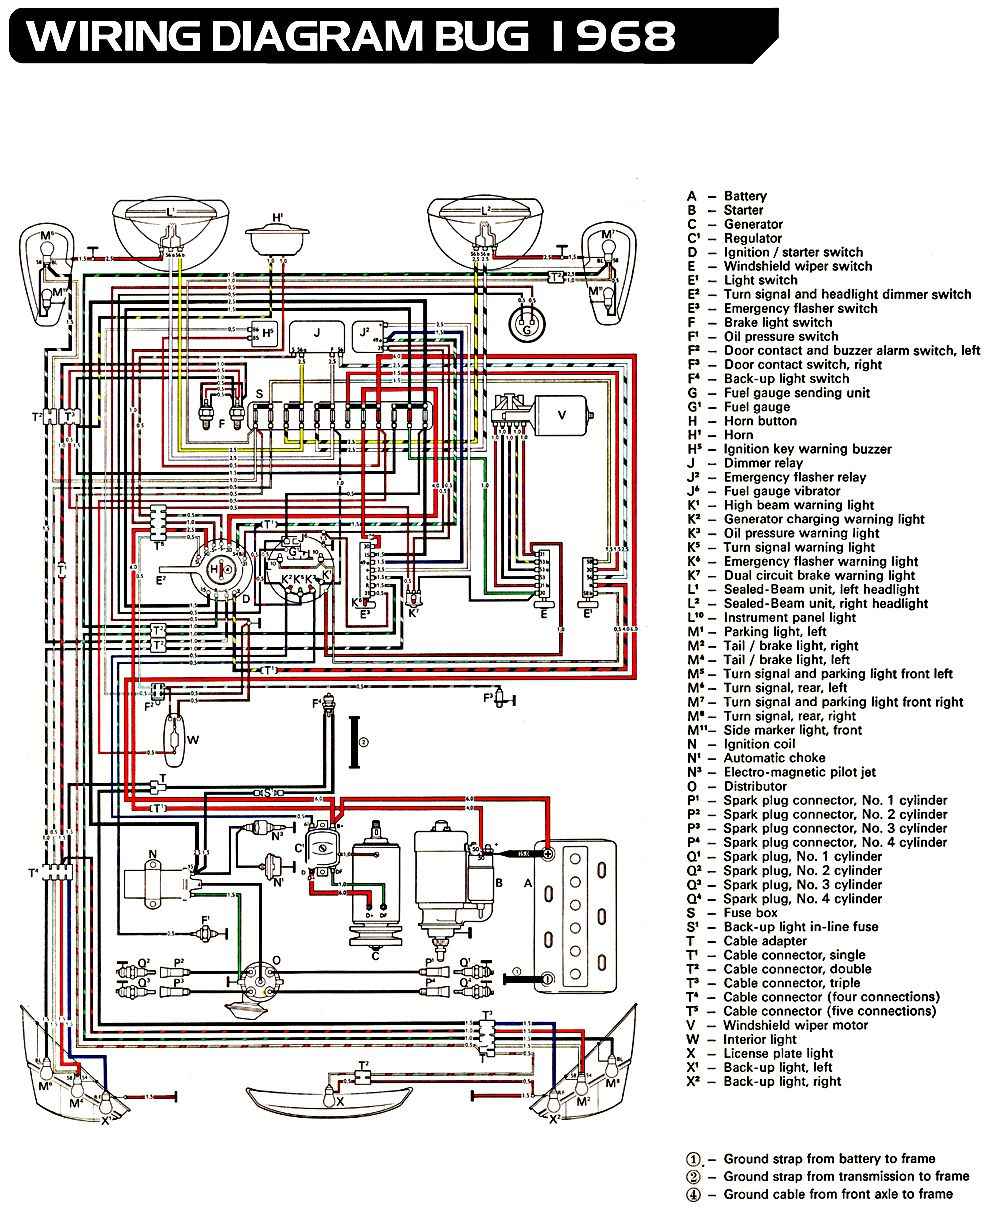 Vw bug ignition wiring diagram free